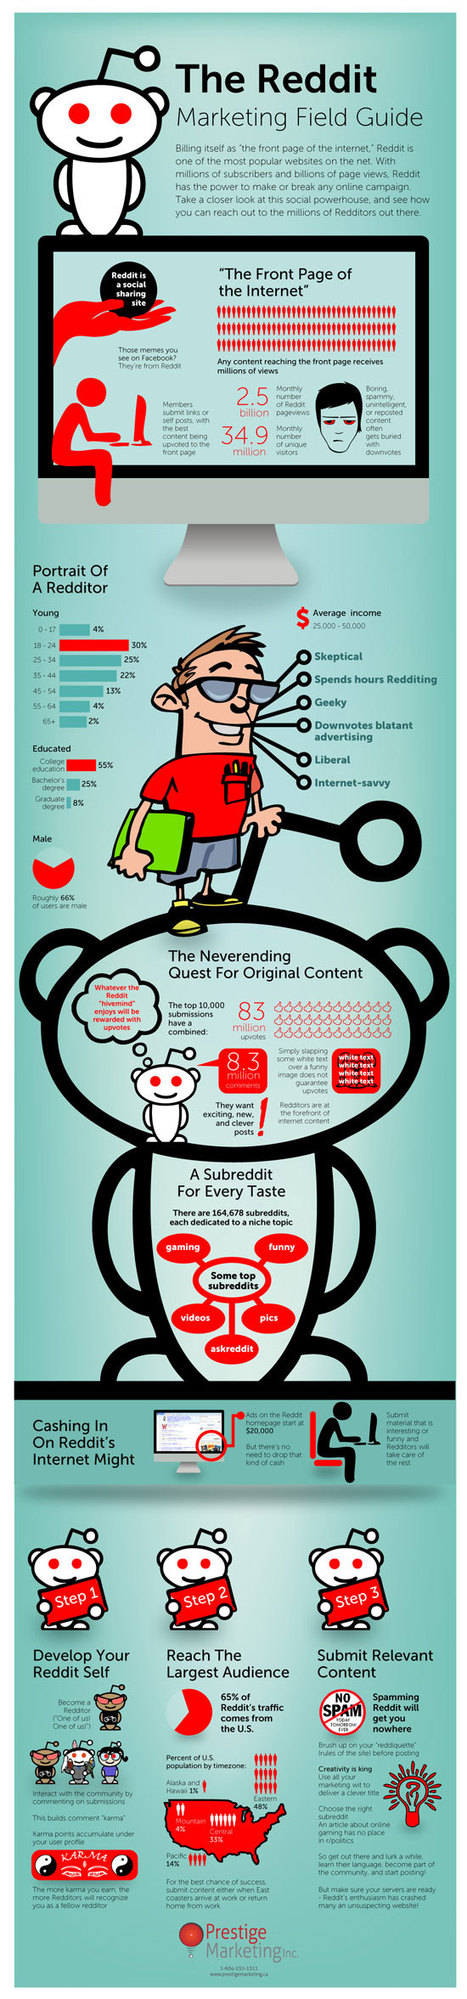 A Guide for Marketing on Reddit #Infographic | Email Marketing | Scoop.it